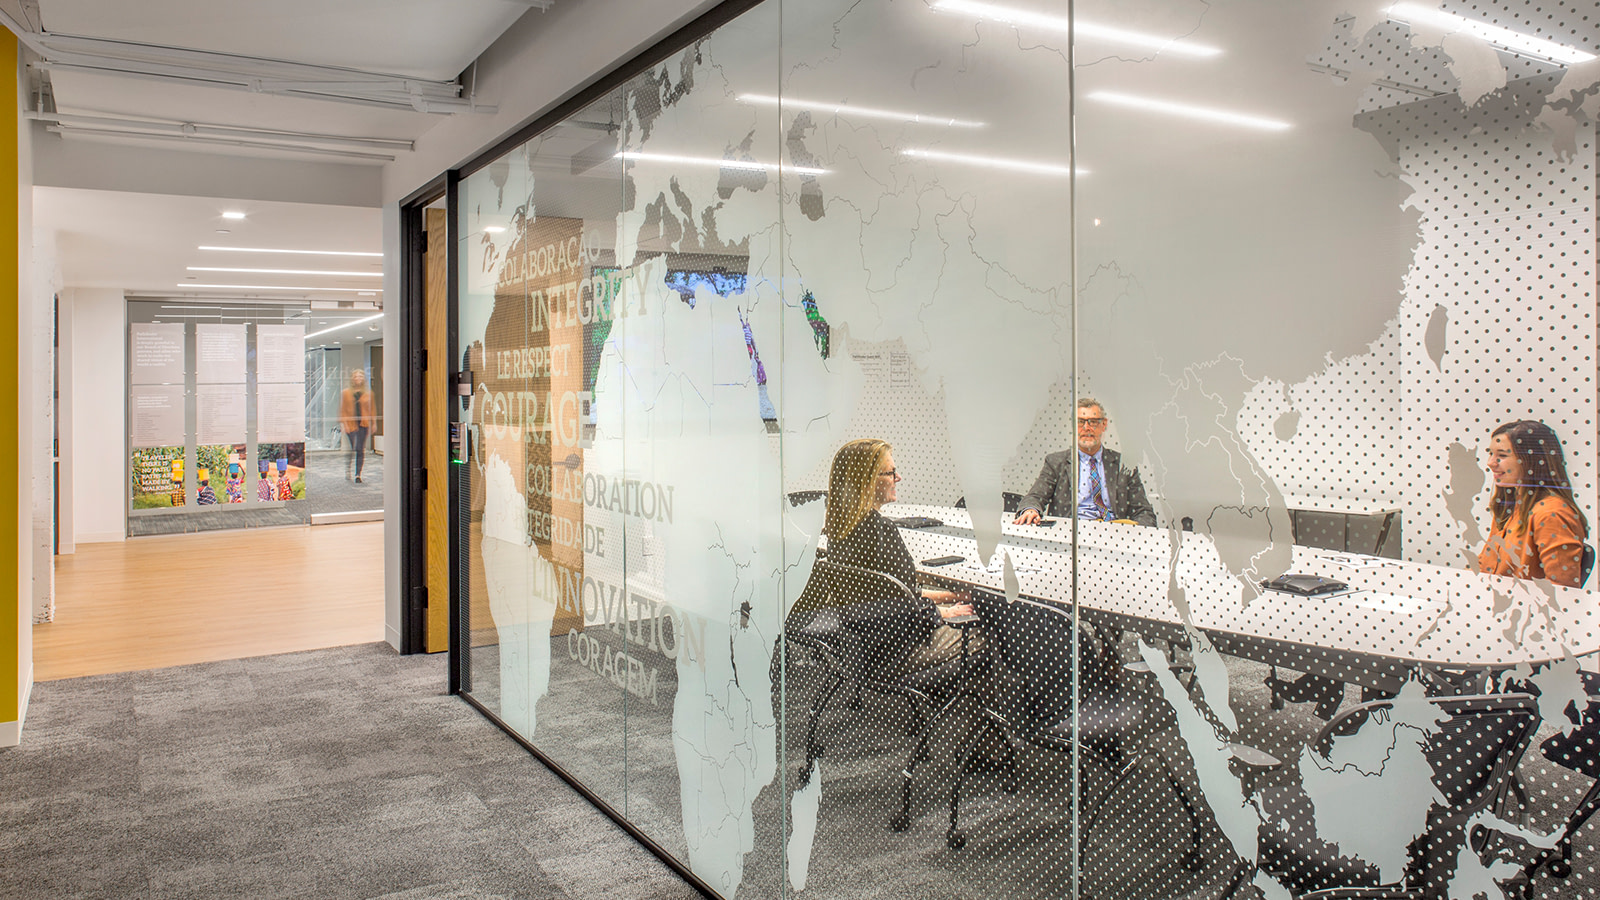 A glass partition at a non-profit meeting room.